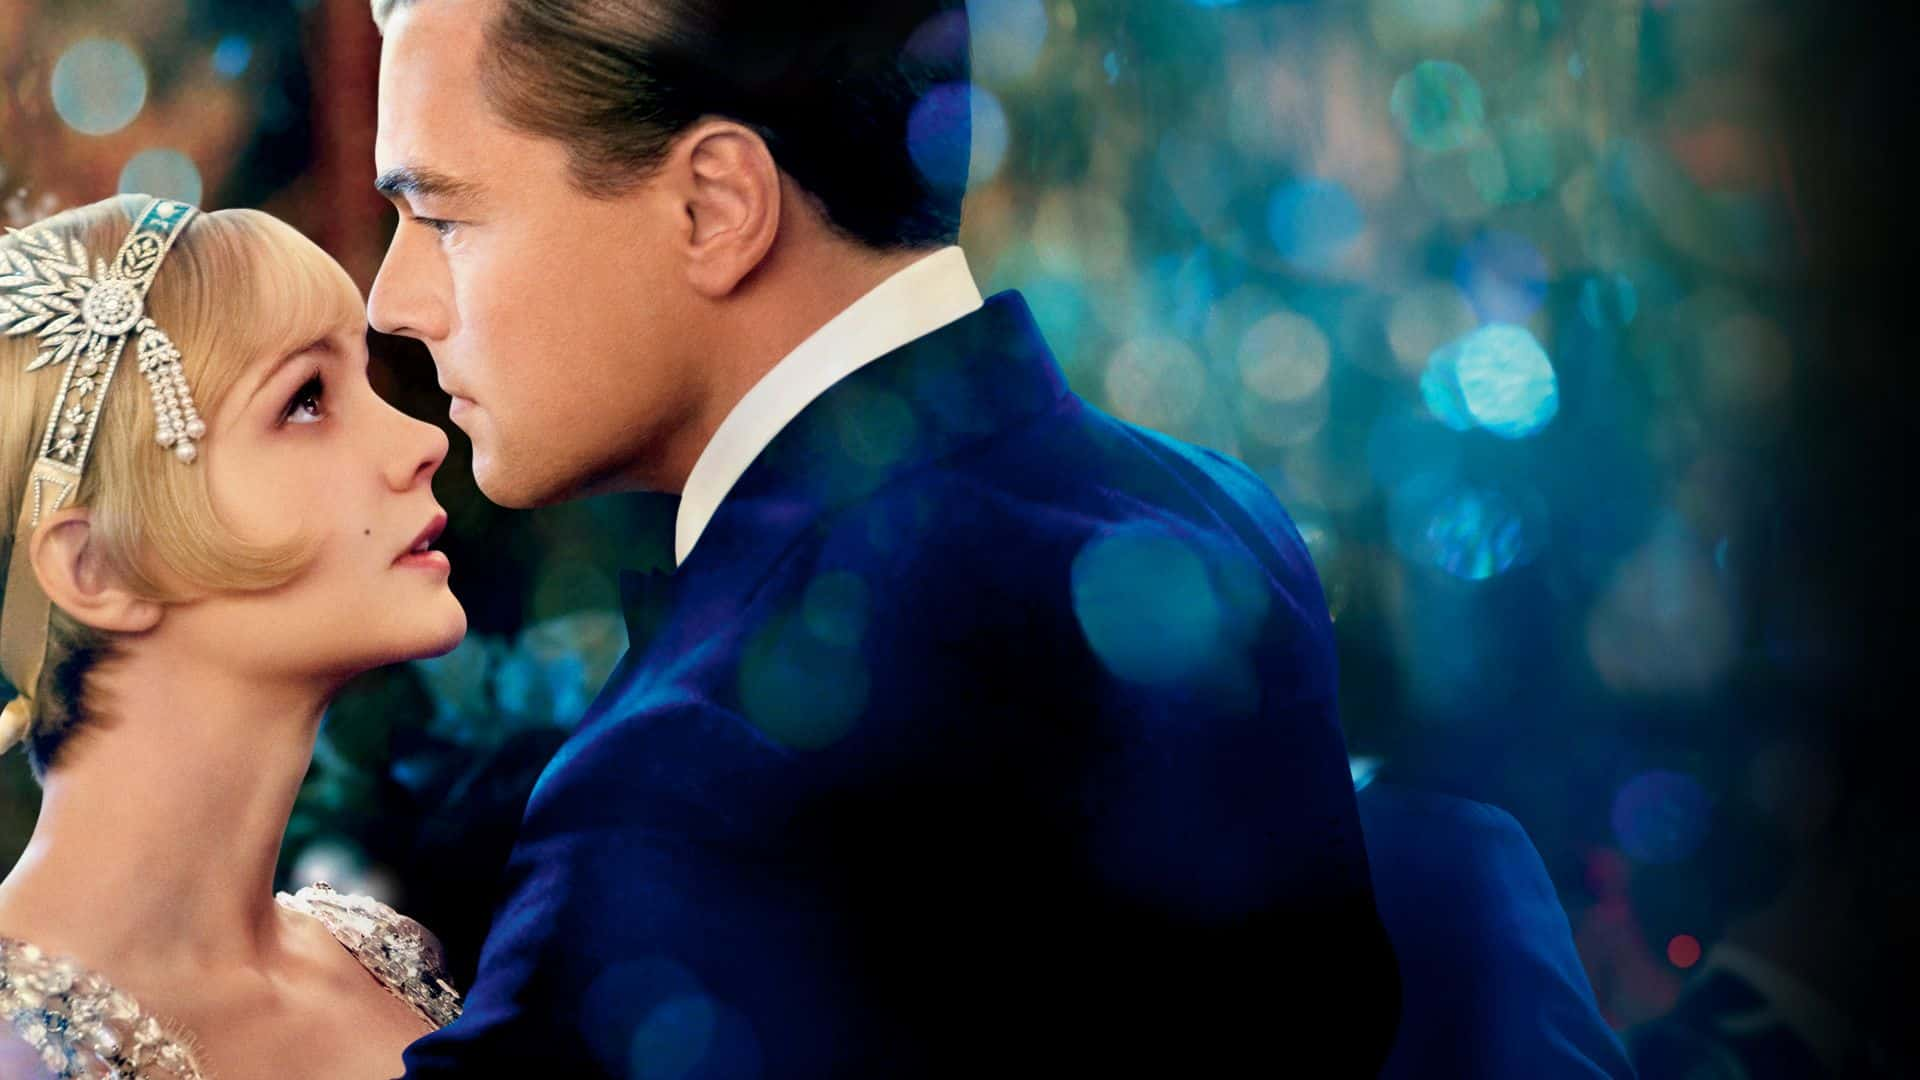 The Great Gatsby : the Romantic Quest photo